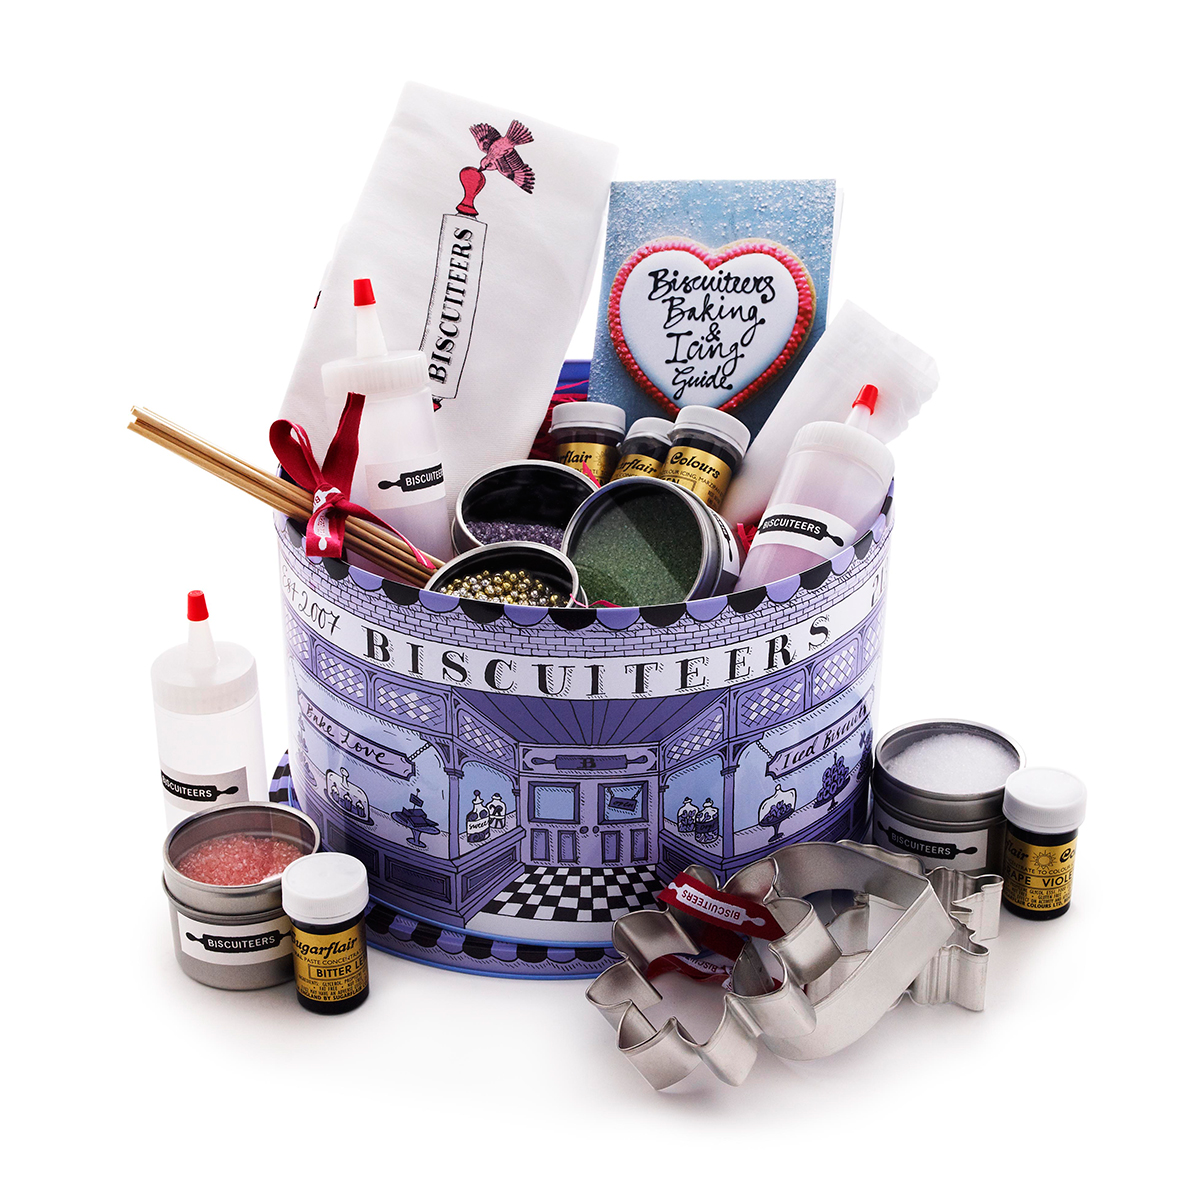 Gift Ideas Housekeeper: 20 Christmas Gift Ideas: Over £50